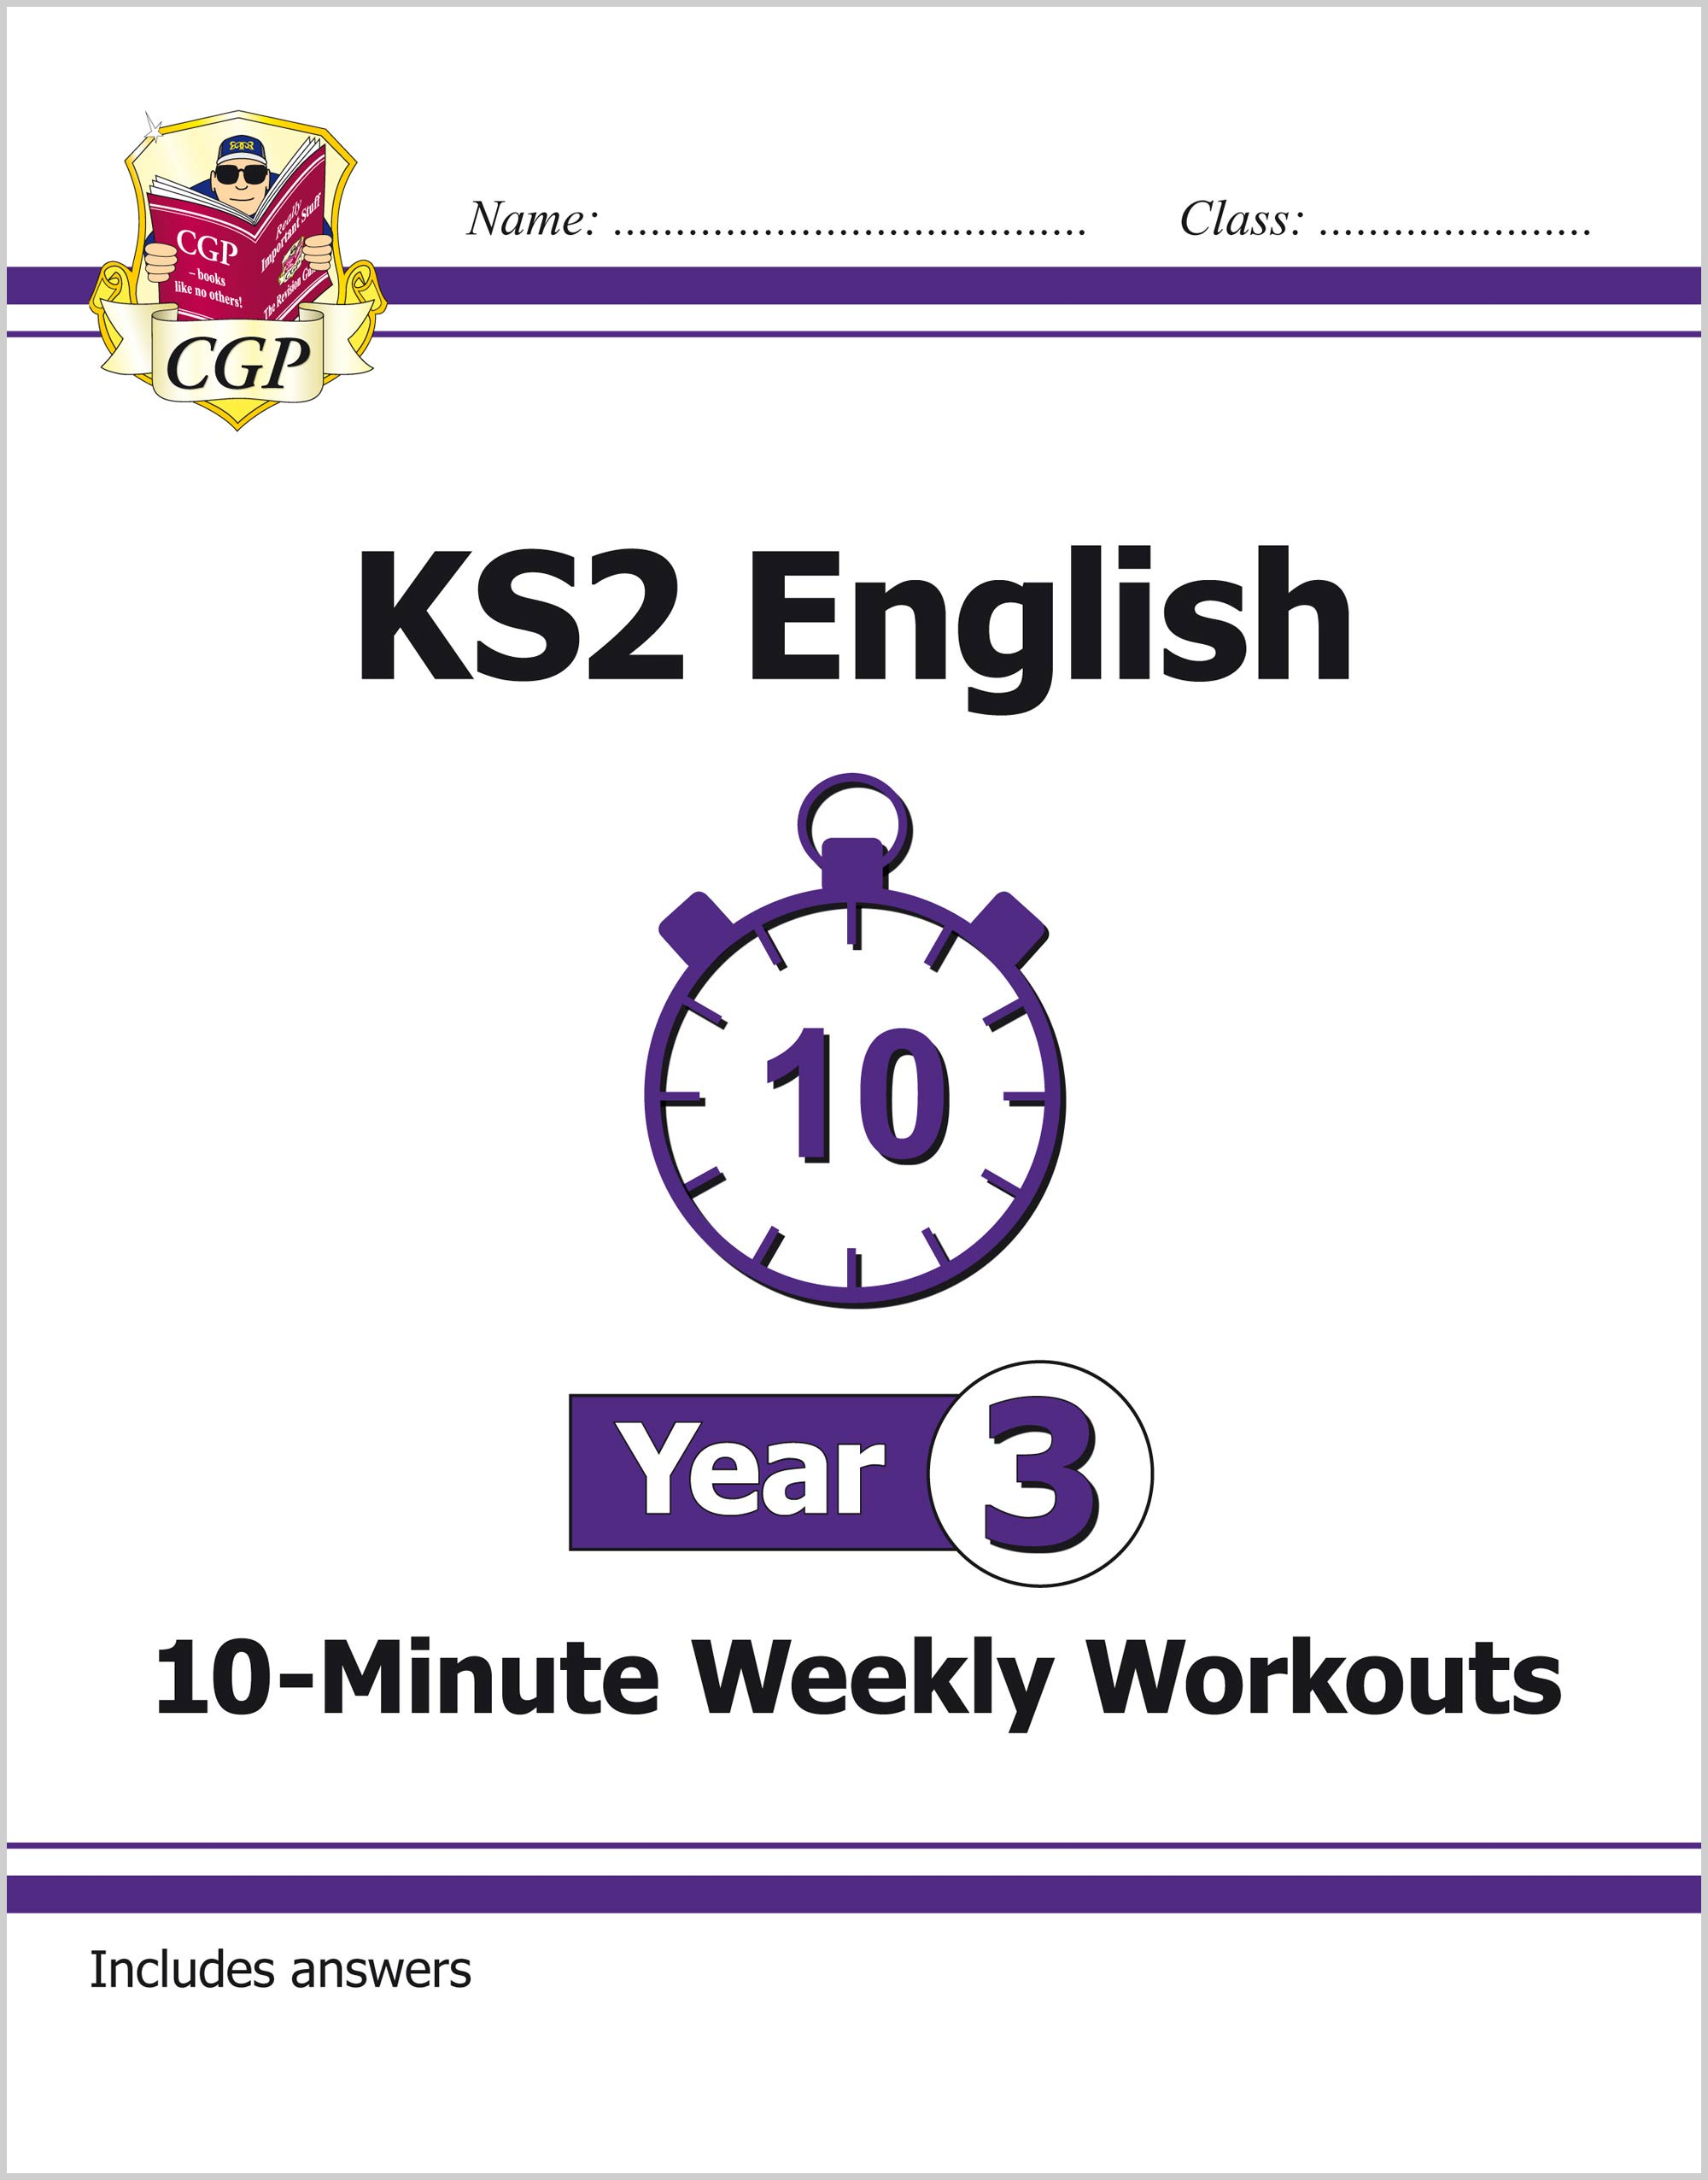 E3XW21 - New KS2 English 10-Minute Weekly Workouts - Year 3